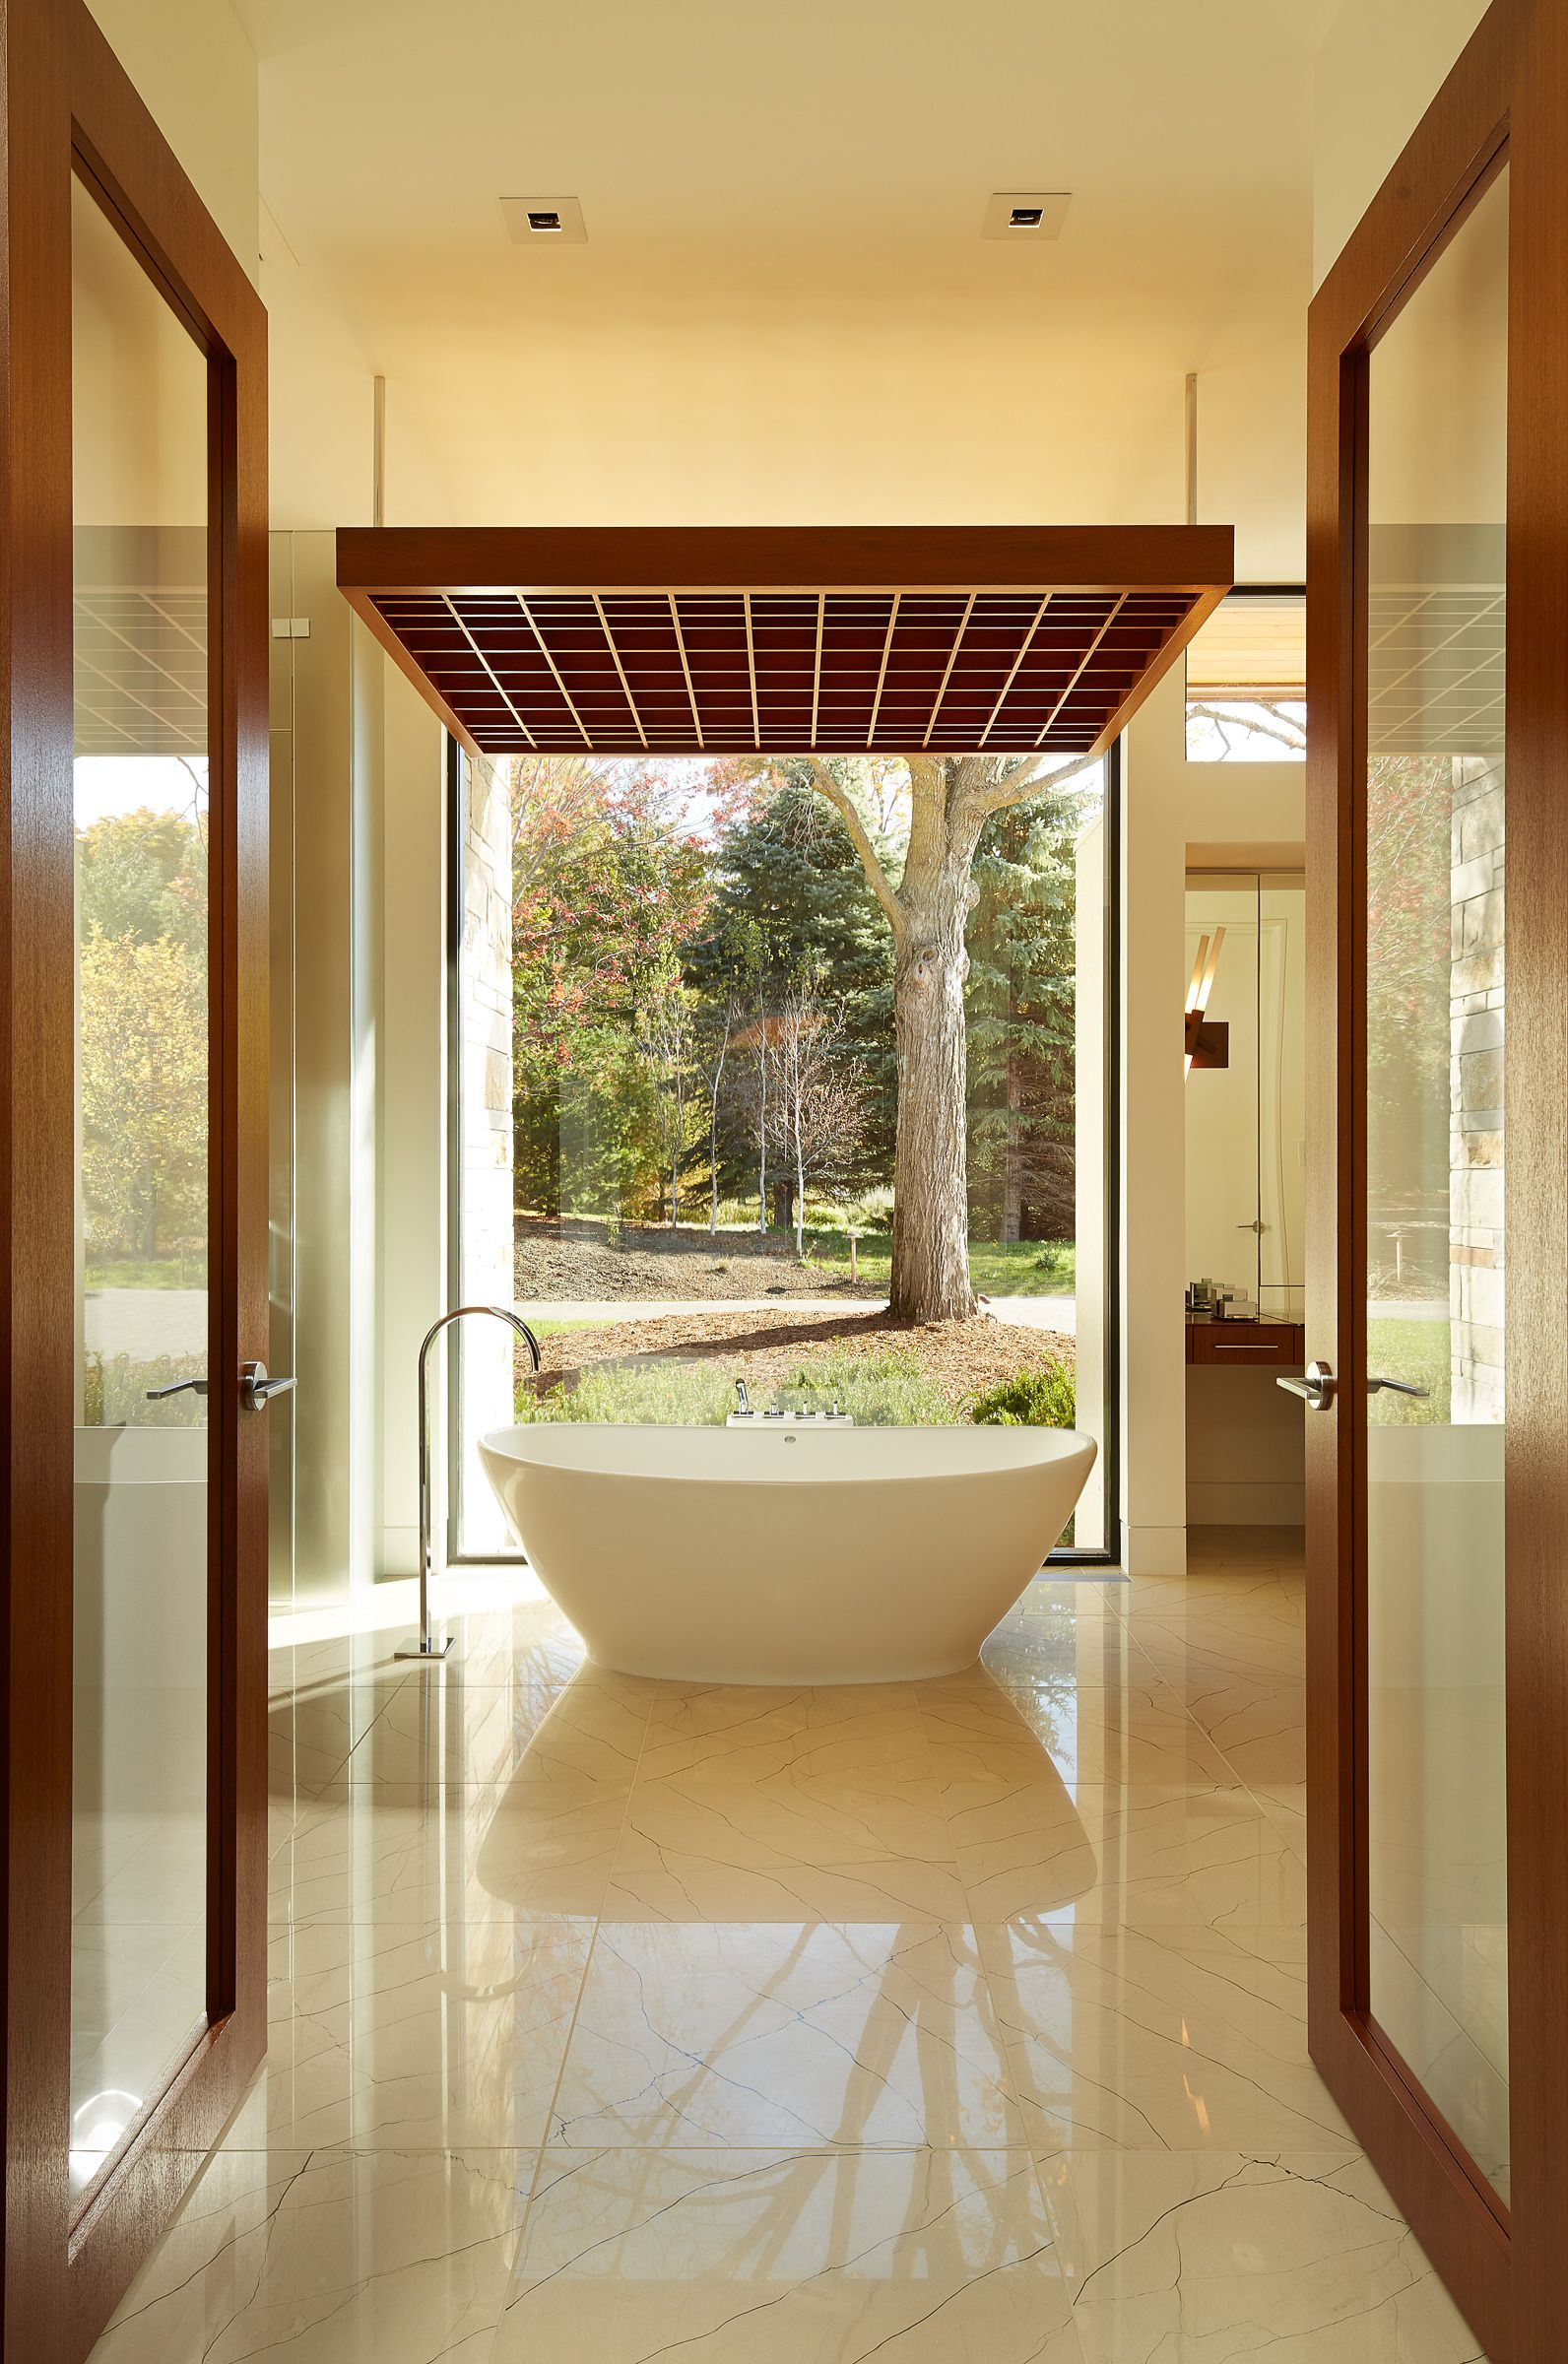 30 Perfect Bathrooms with Luxurious, Curved Tubs